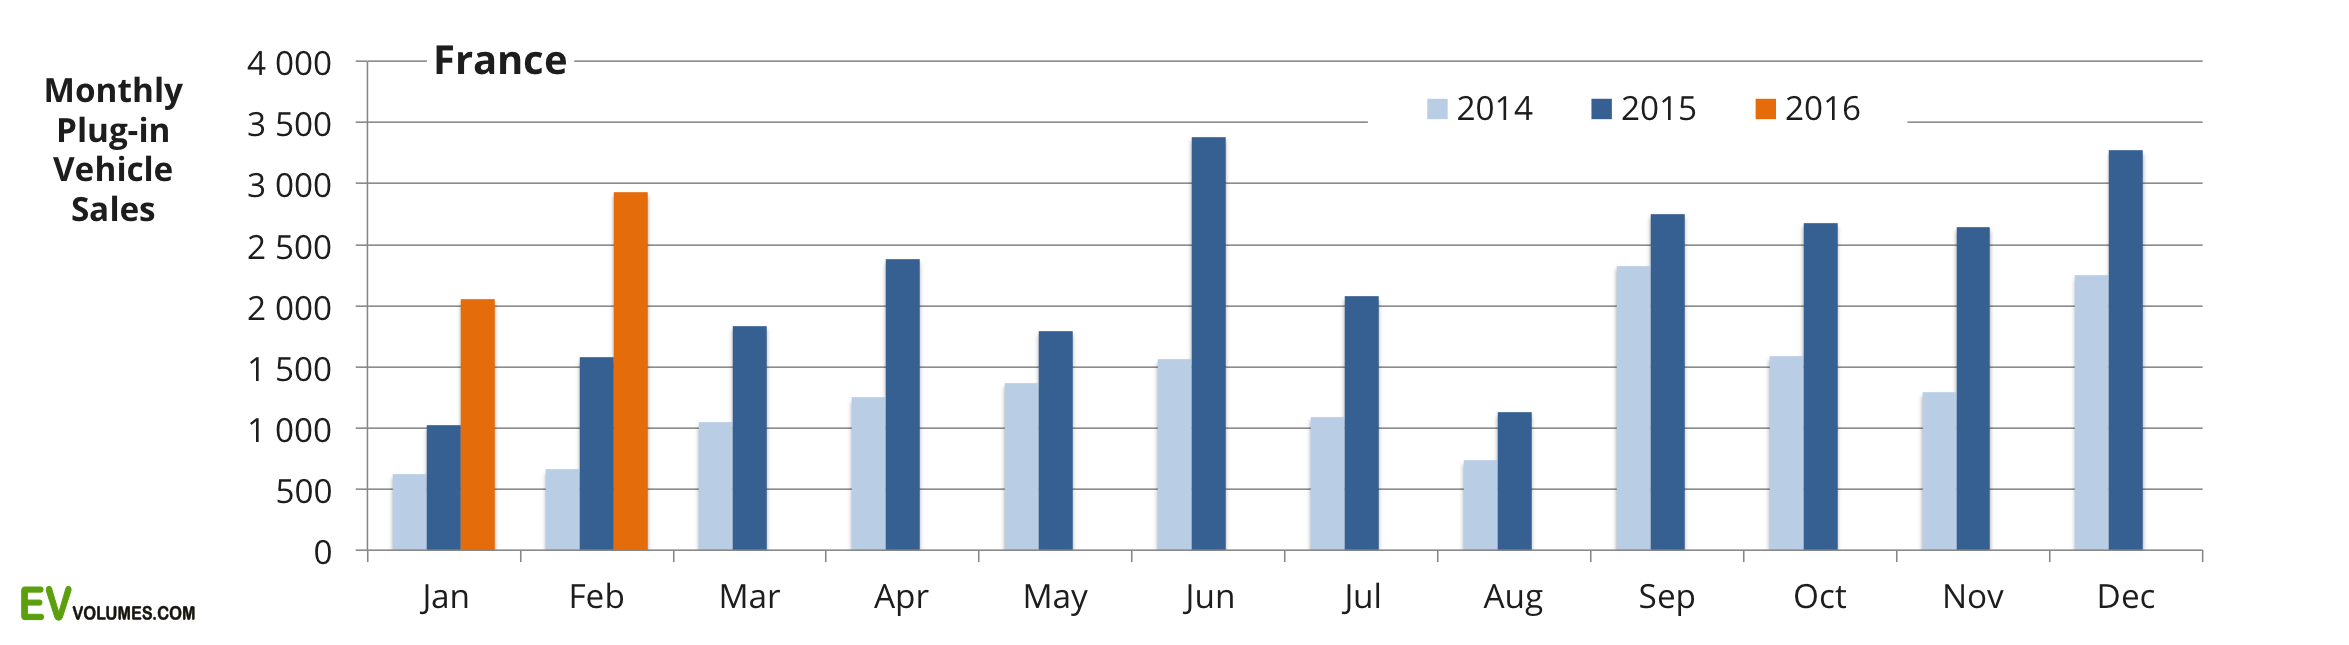 first France Plug-in Volumes 2015 and YTD February 2016 image